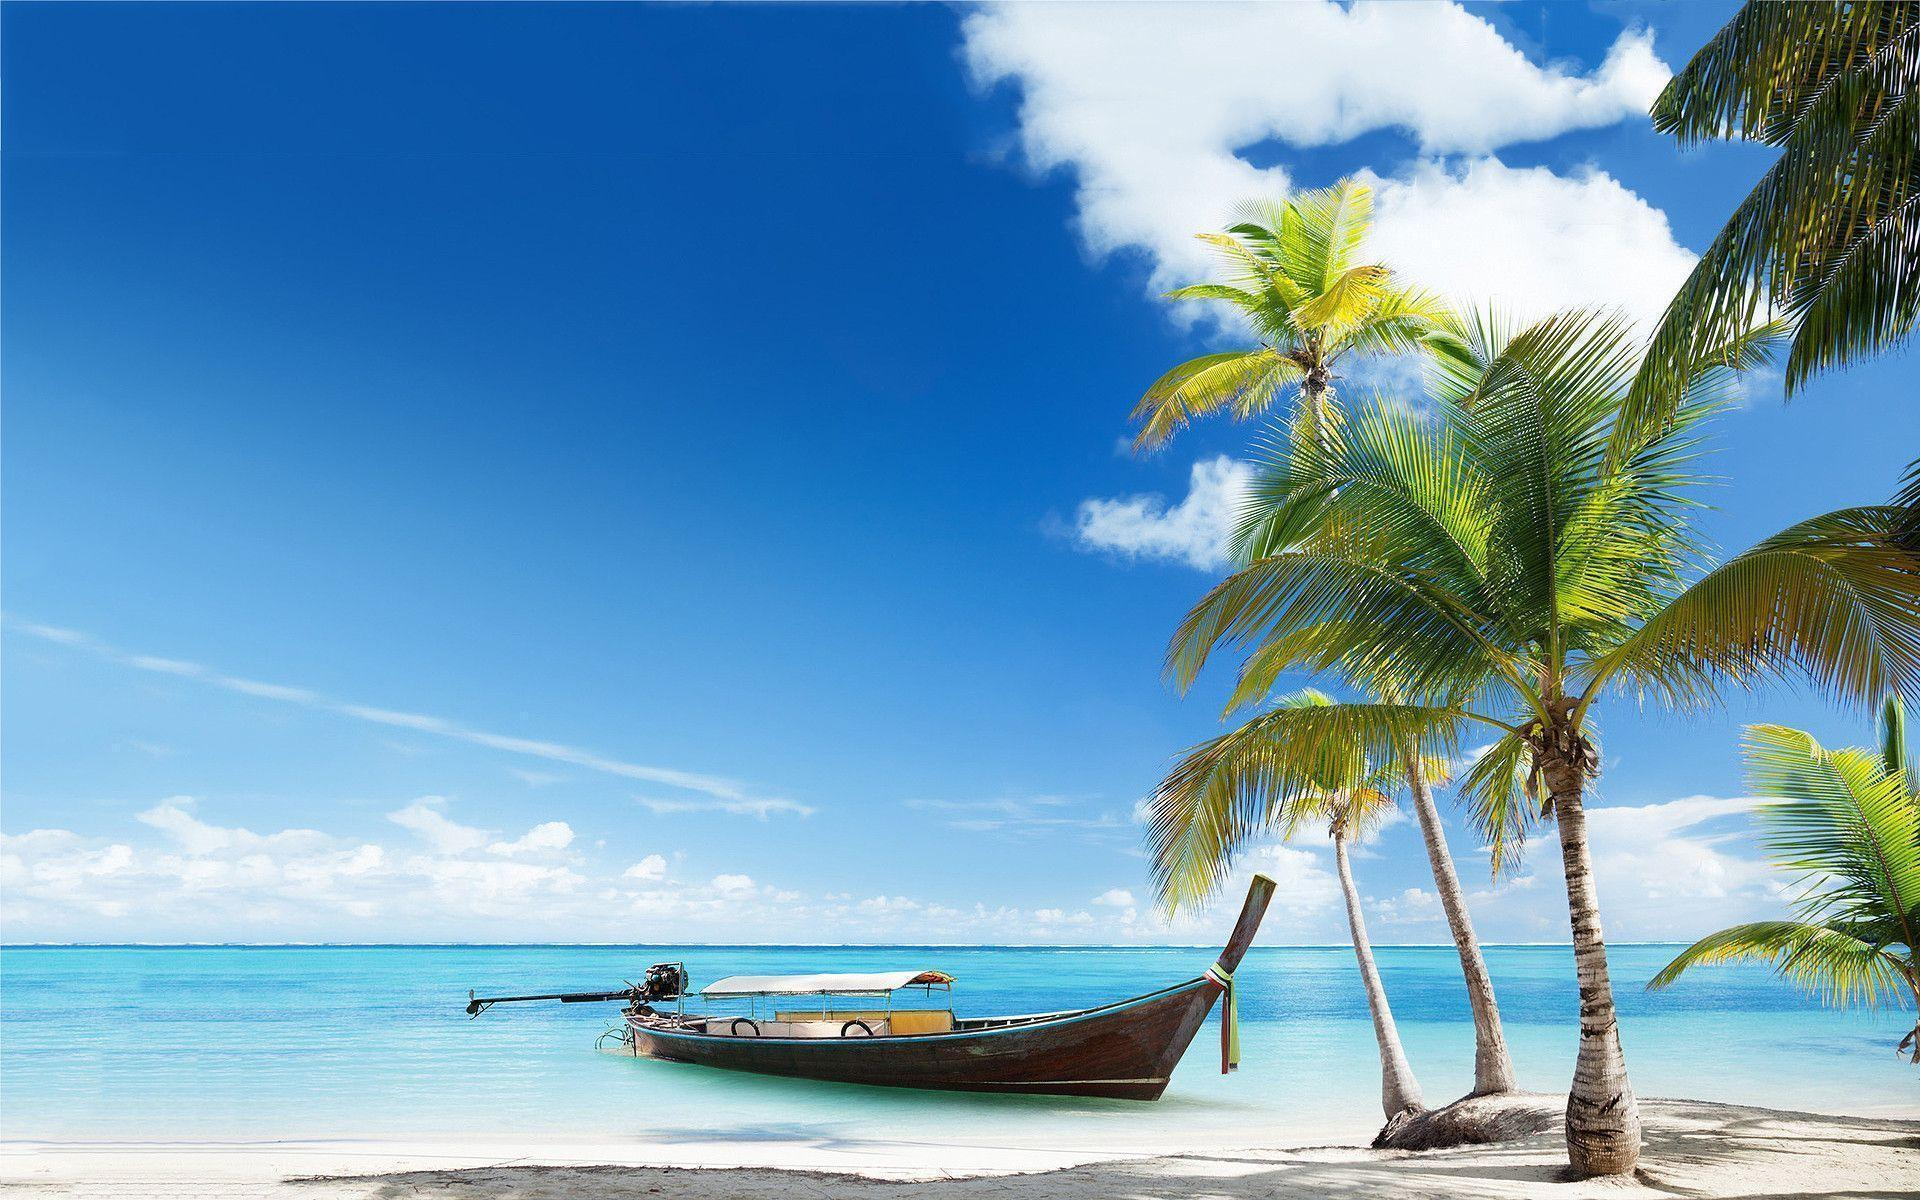 Beach Desktop Wallpaper Widescreen: Wallpapers Tropical Beach